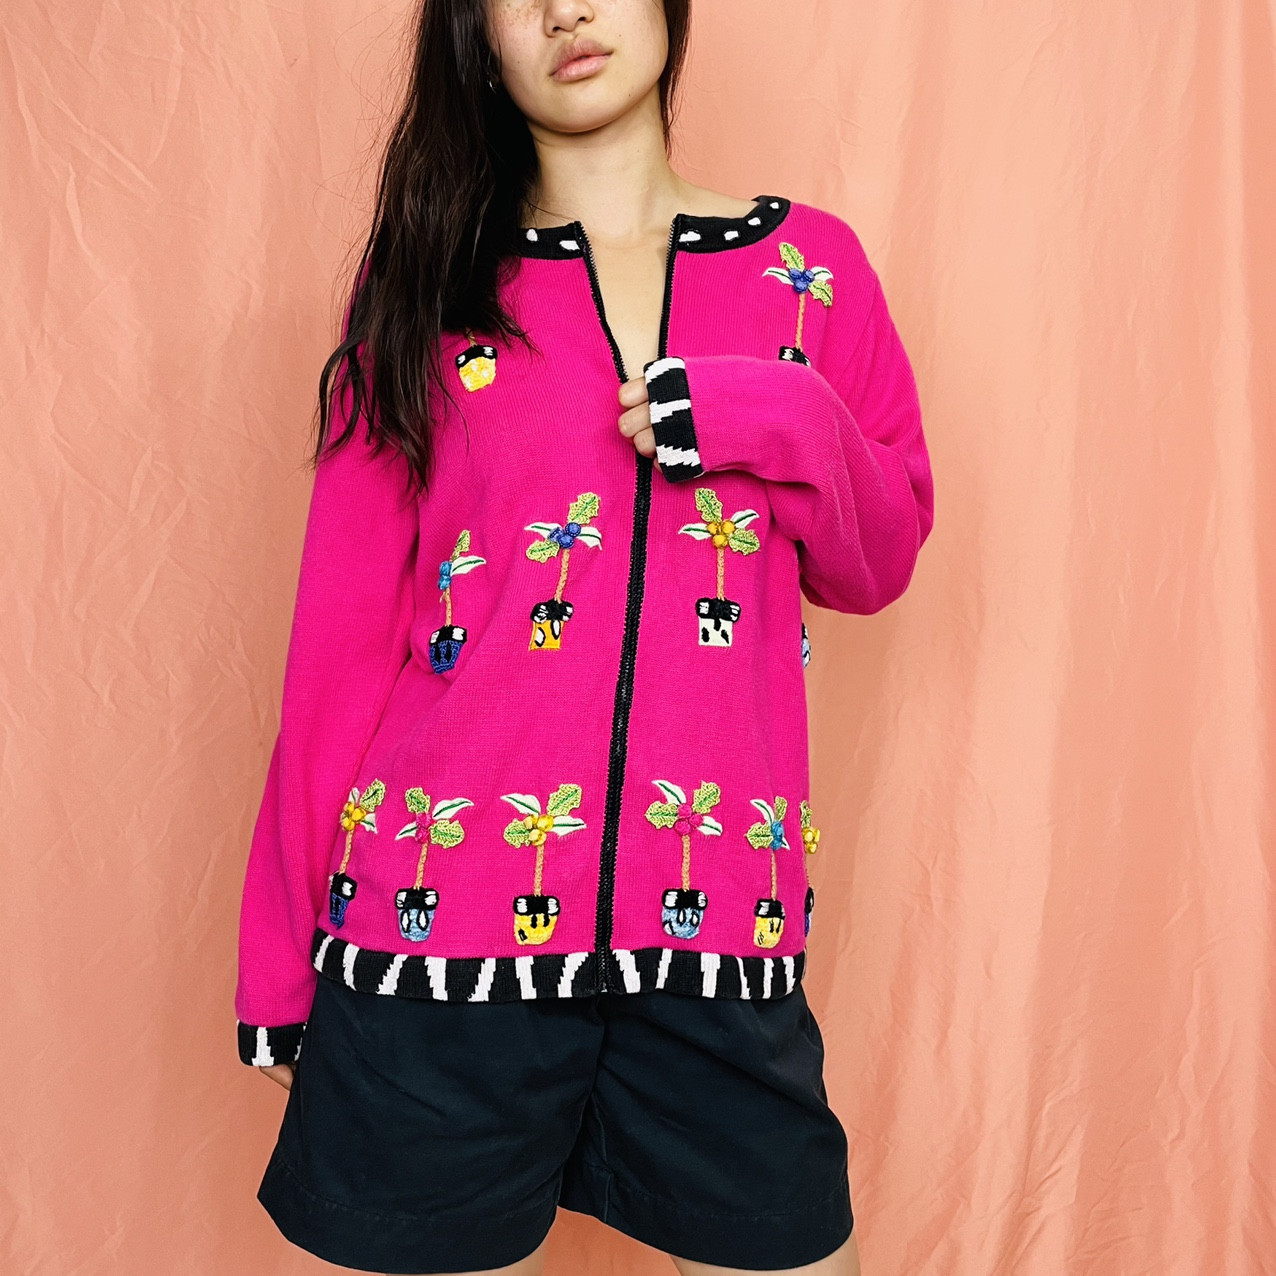 Product Image 1 - Vintage 90s hot pink embroidered